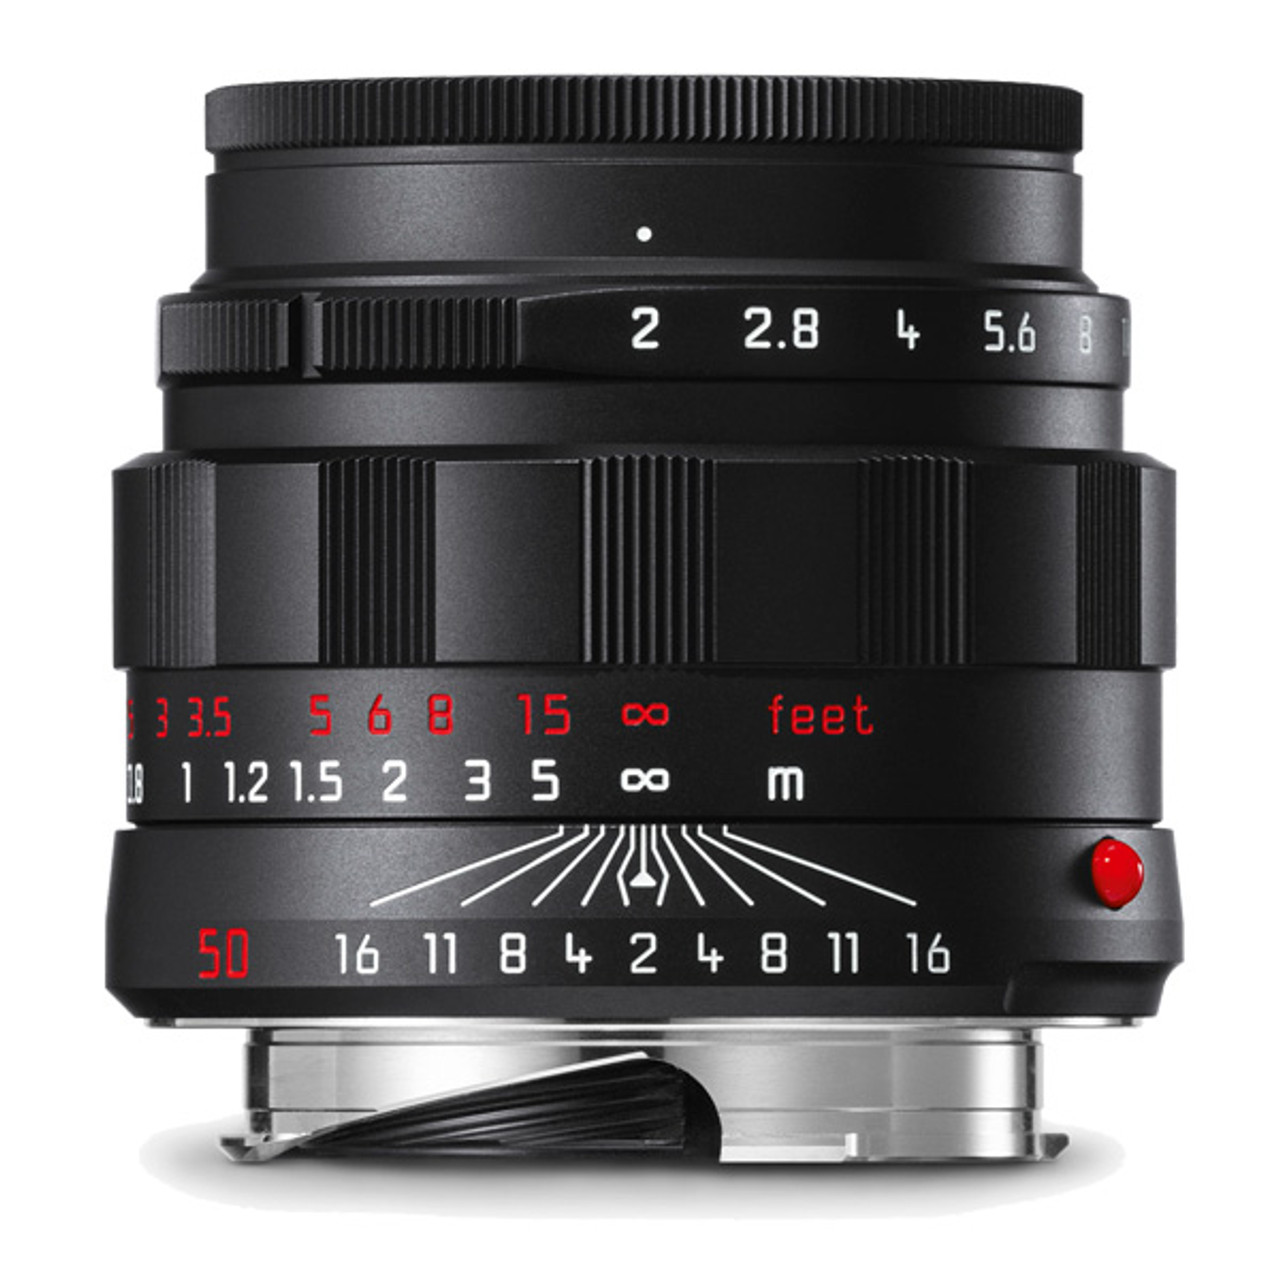 Leica APO-Summicron-M 50 mm f/2 ASPH  (black chrome finish)